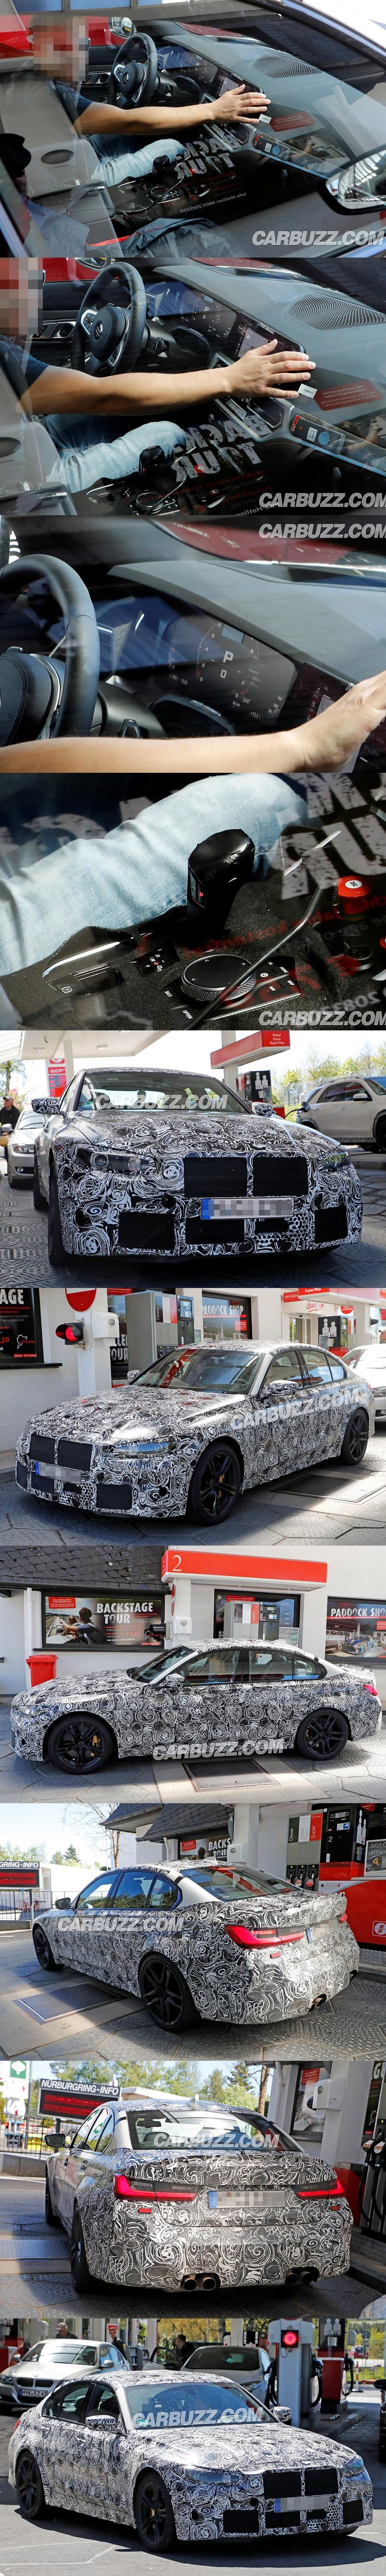 Take A Look At The 2020 Bmw M3 S Stunning Interior Bmw M3 Bmw